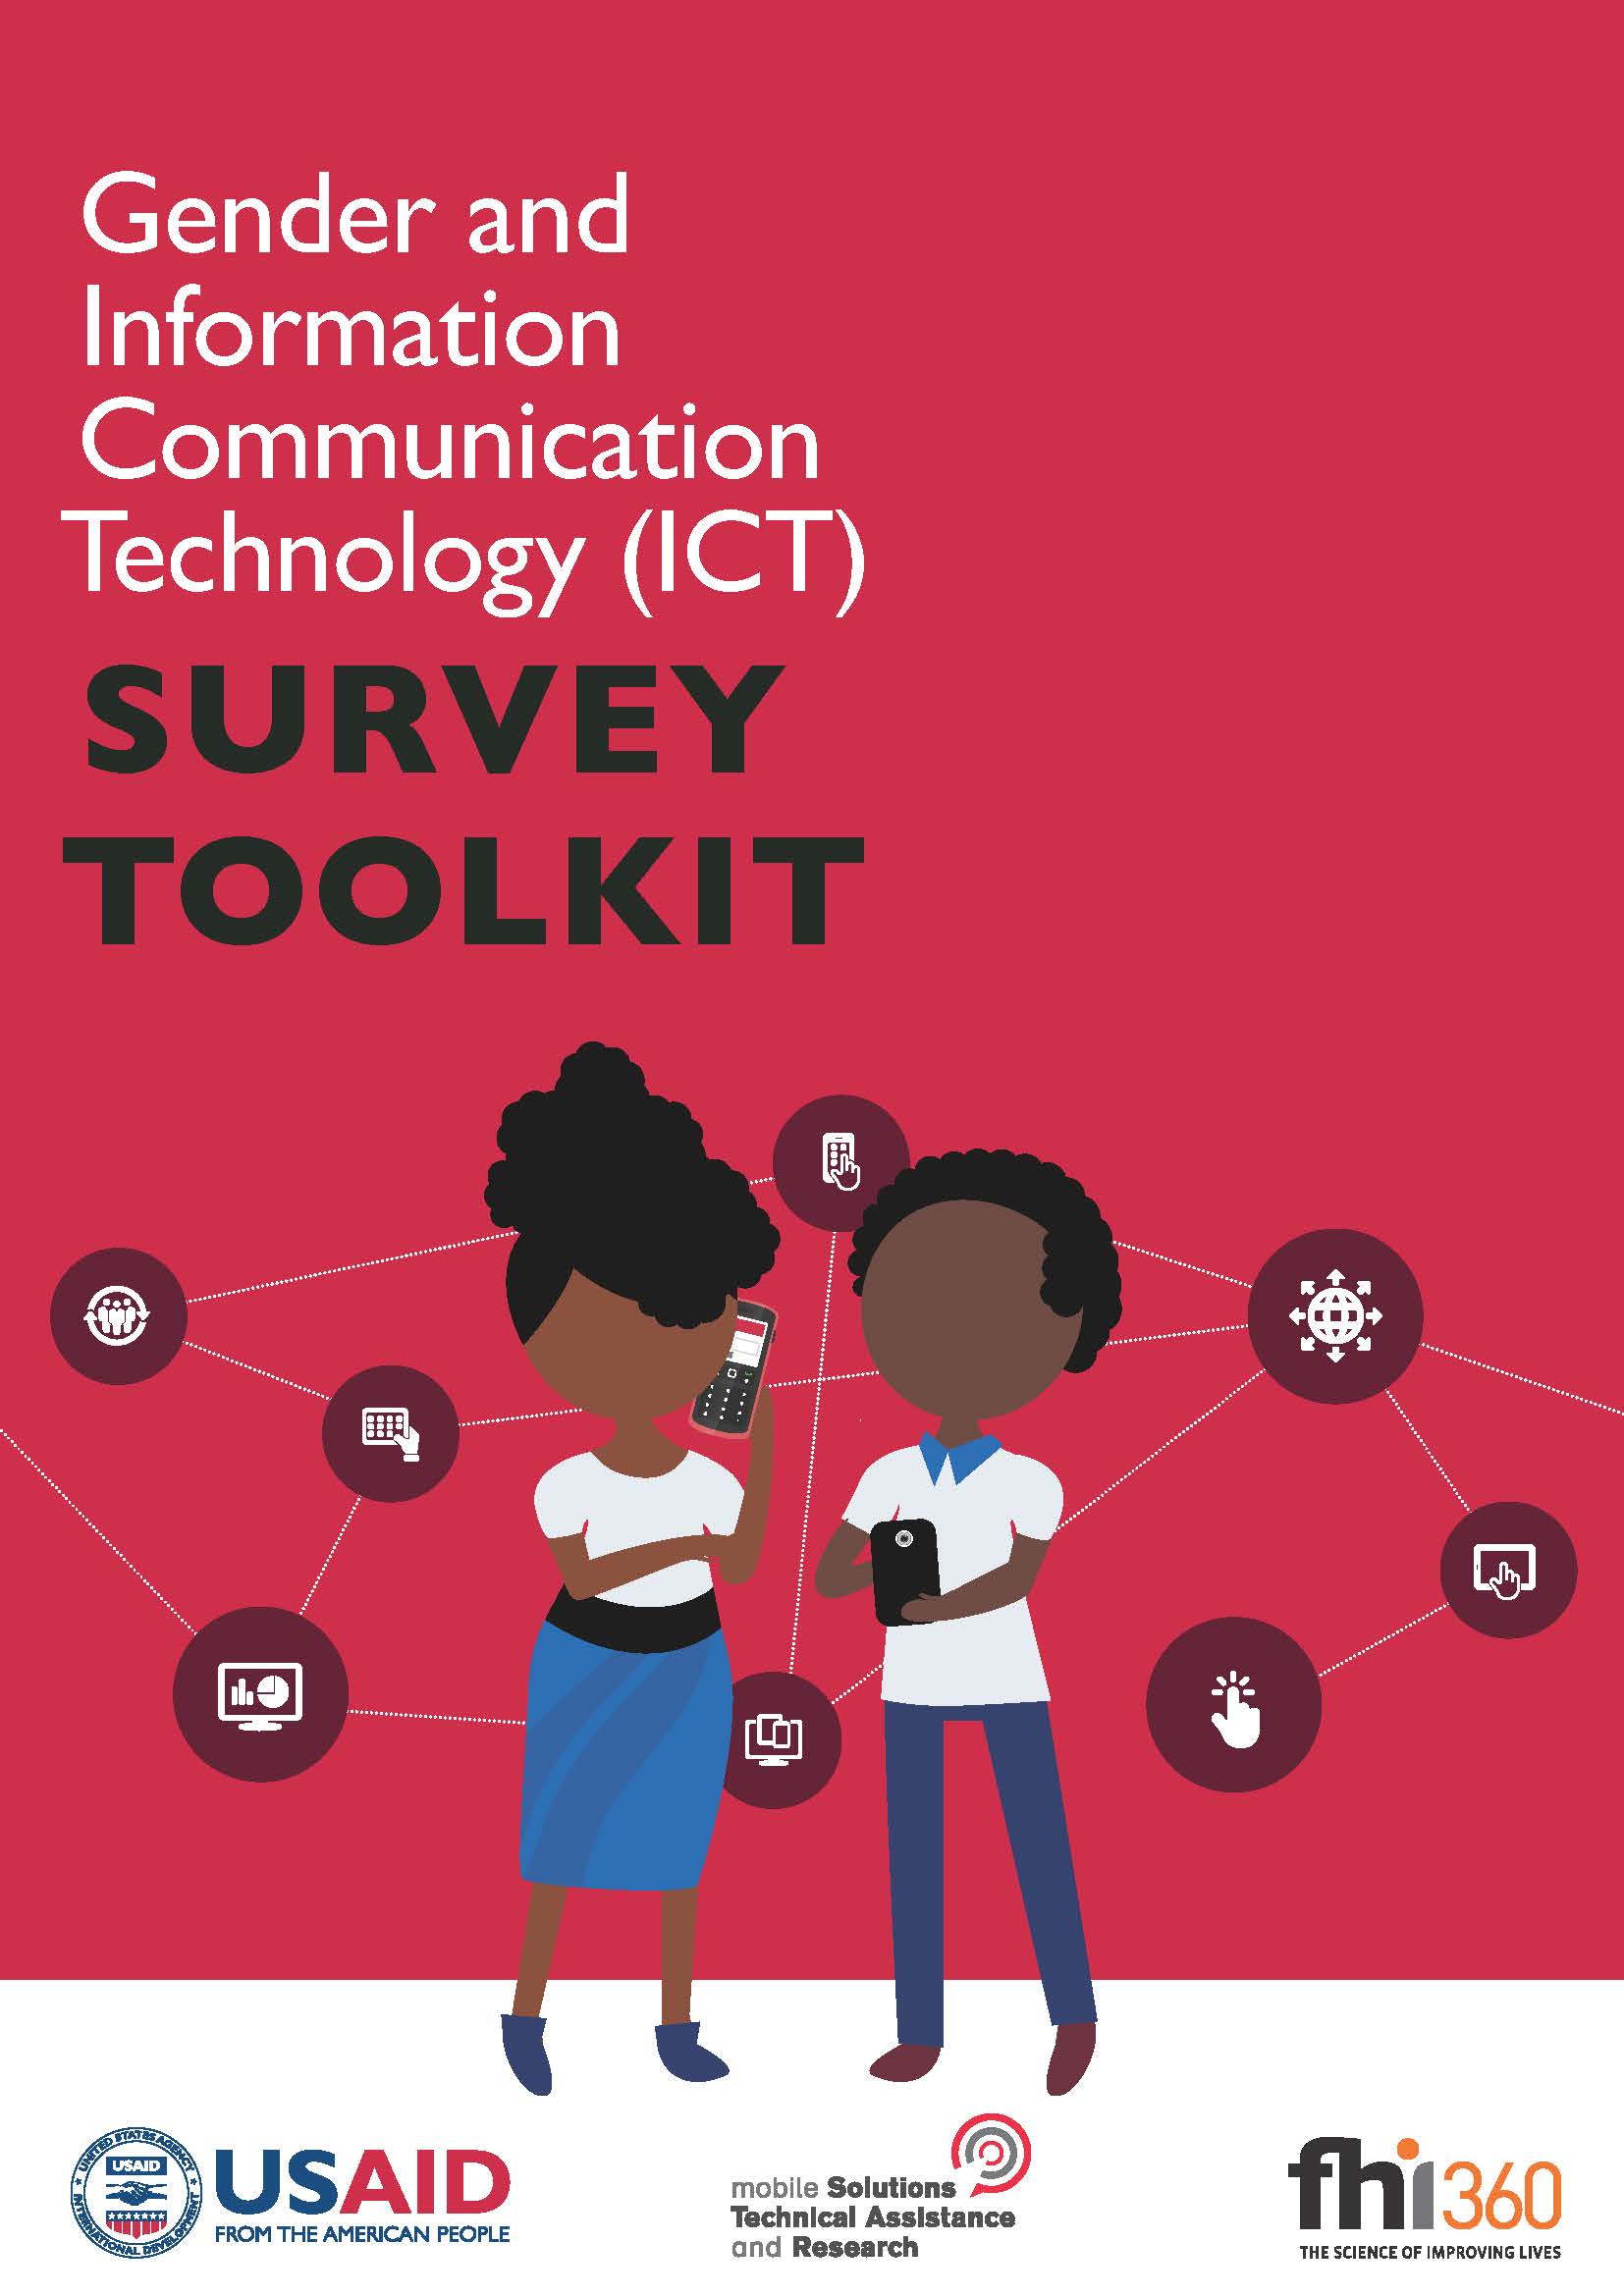 Gender and ICT Toolkit